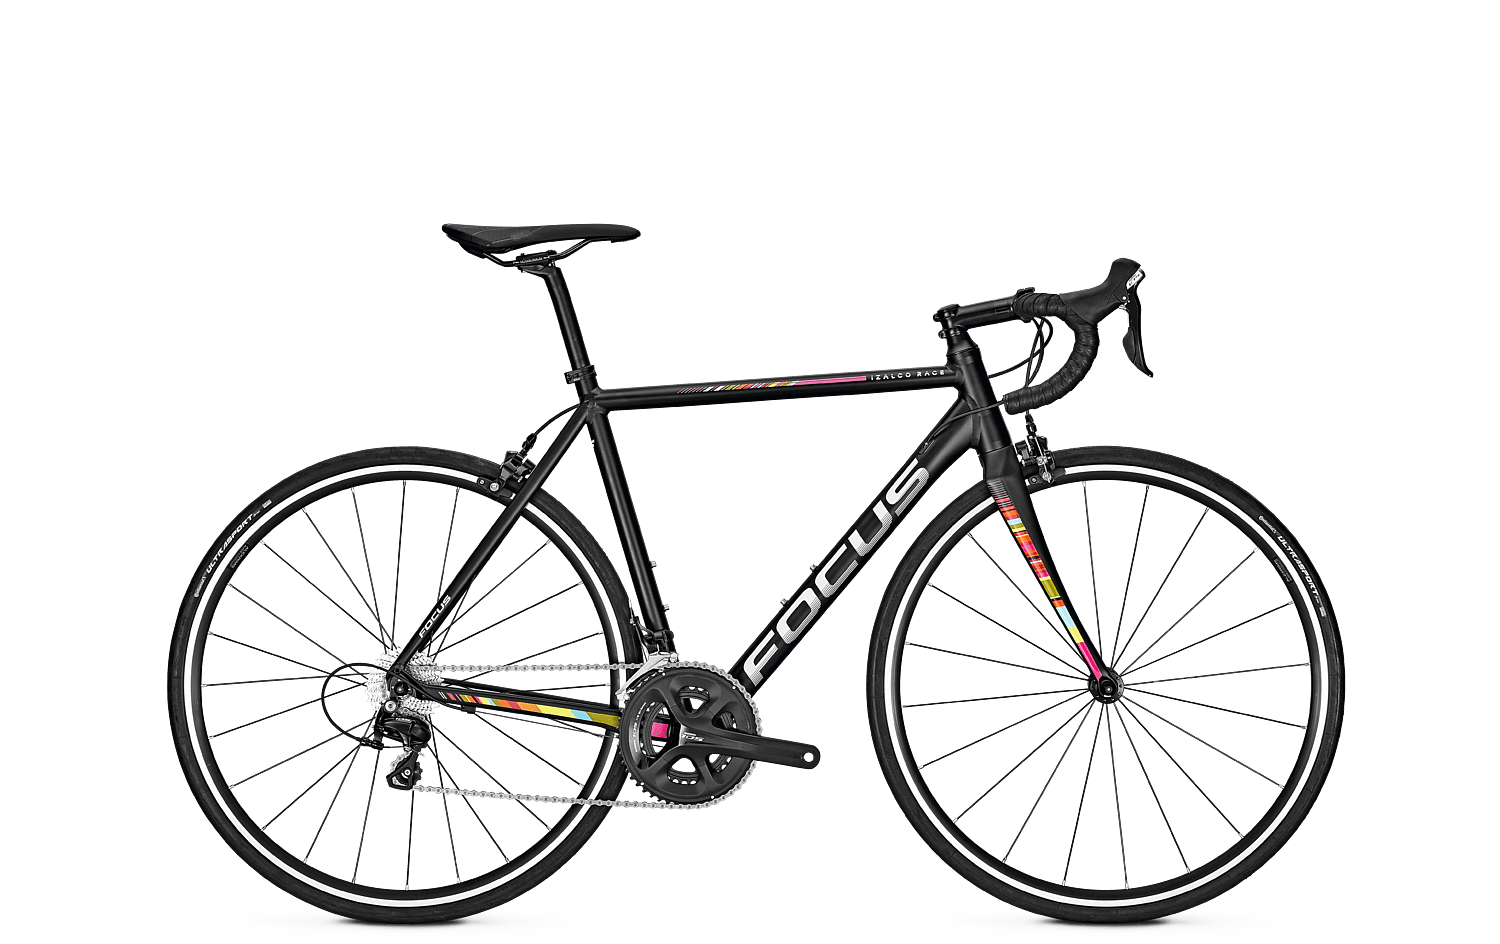 "Велосипед шоссейный Focus - Izalco Race 9.8"" 22G 28"" 54/M Freestyle M (FCS 633012112)"